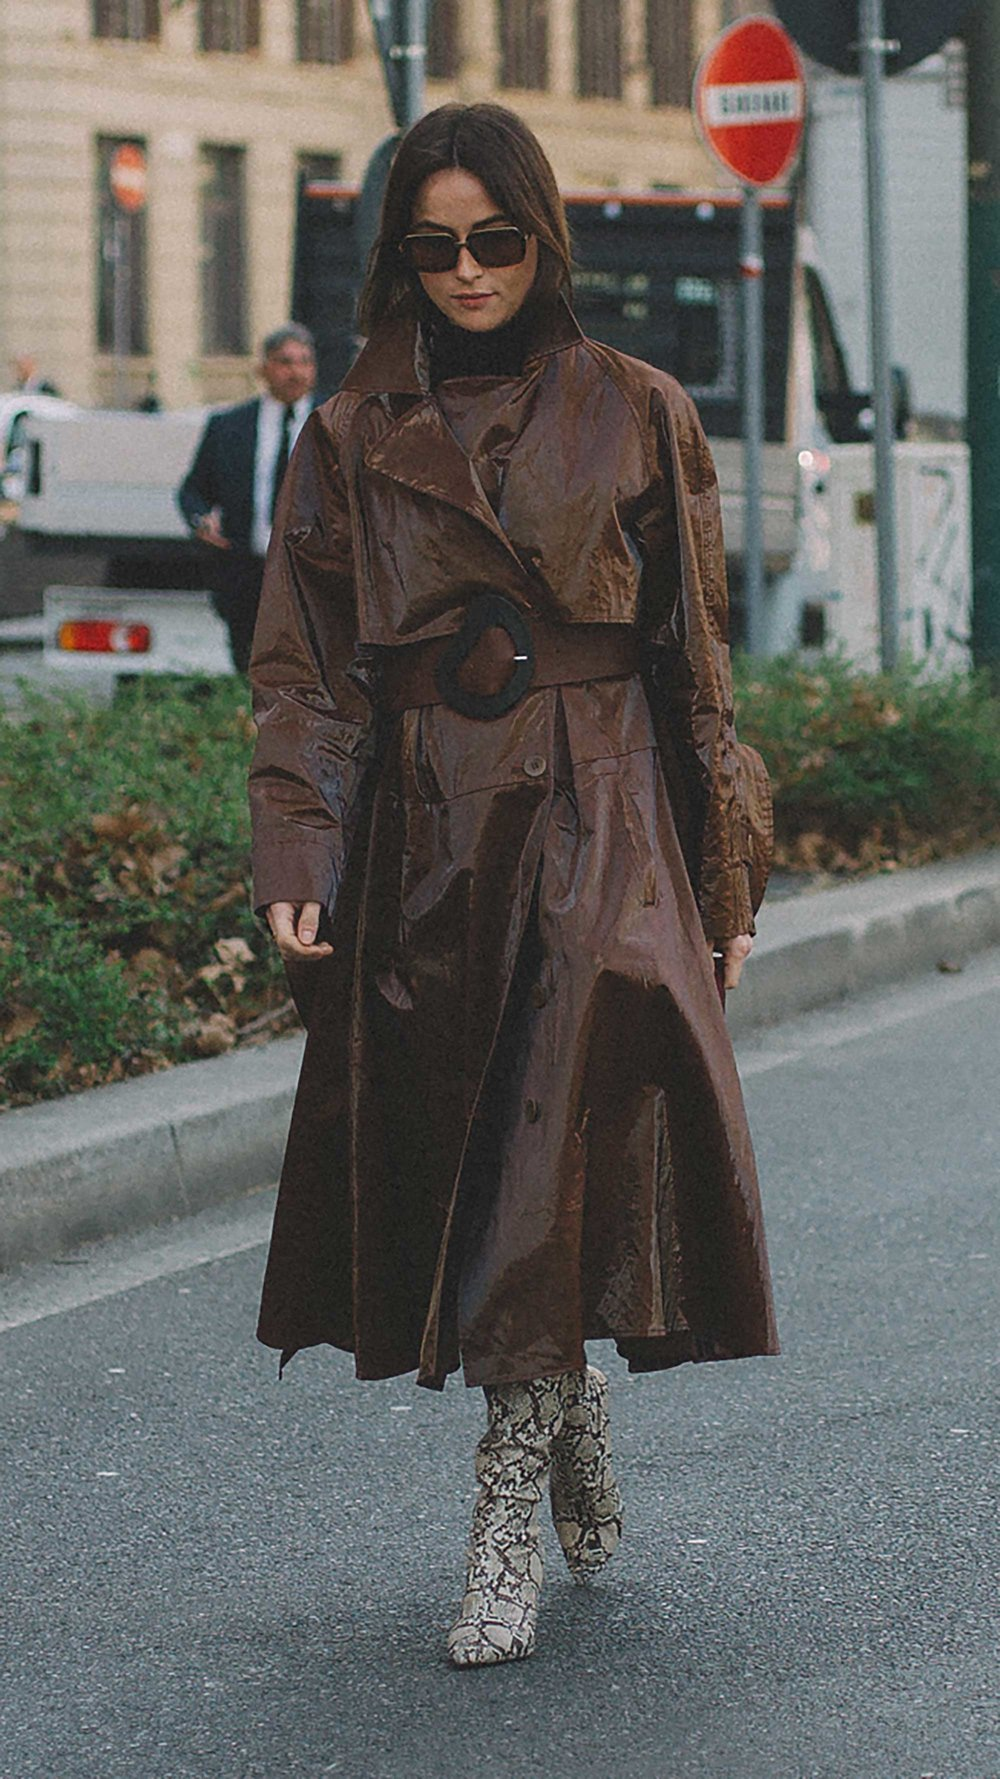 est outfits of Milan Fashion Week street style day two MFW FW19 39.jpg